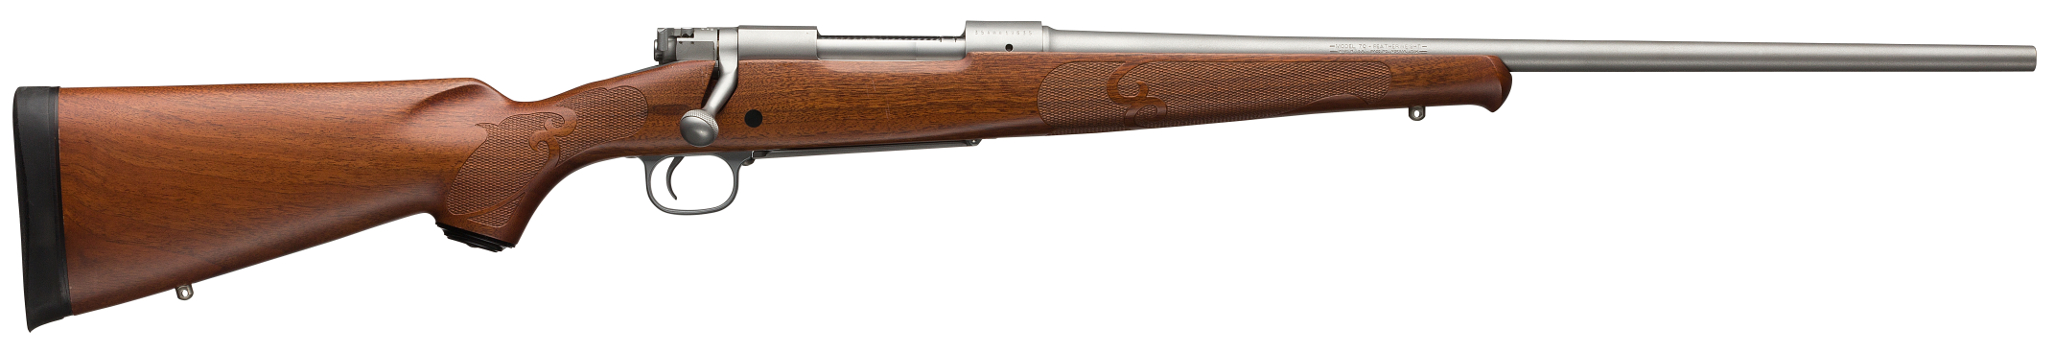 Winchester Model 70 Featherweight Stainless rifle